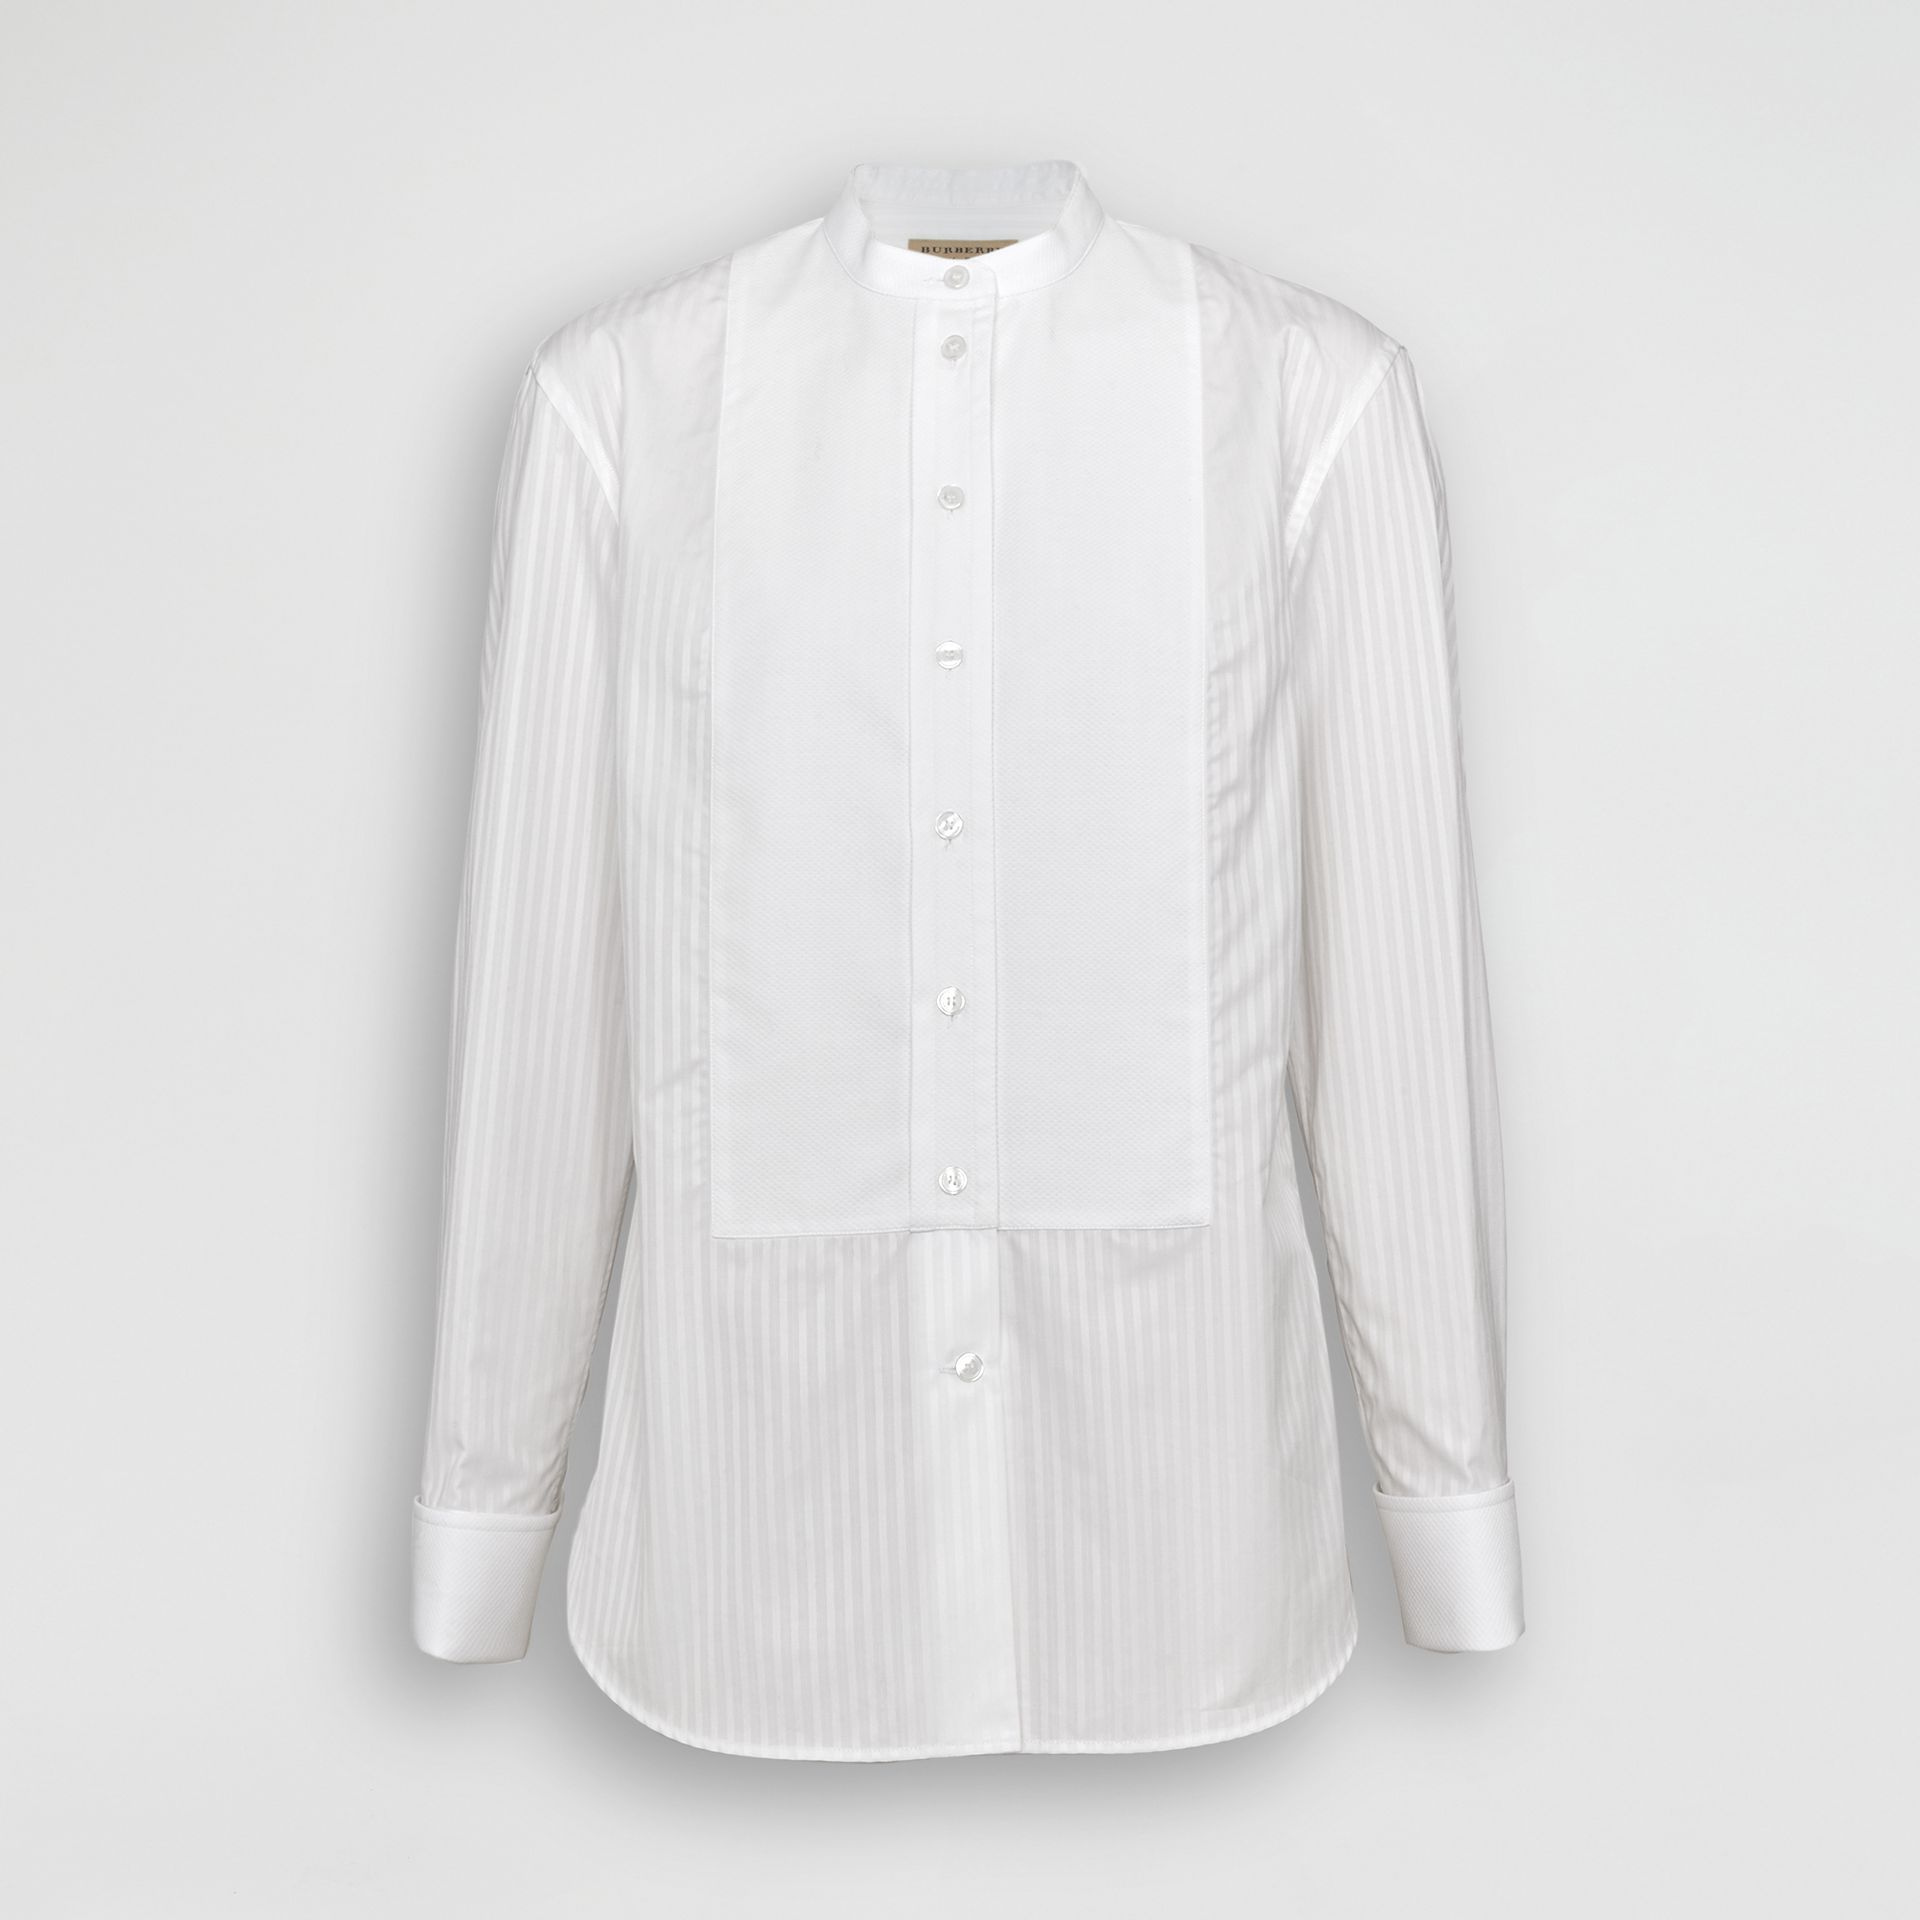 Slim Fit Panelled Bib Cotton Shirt in White - Women | Burberry - gallery image 3